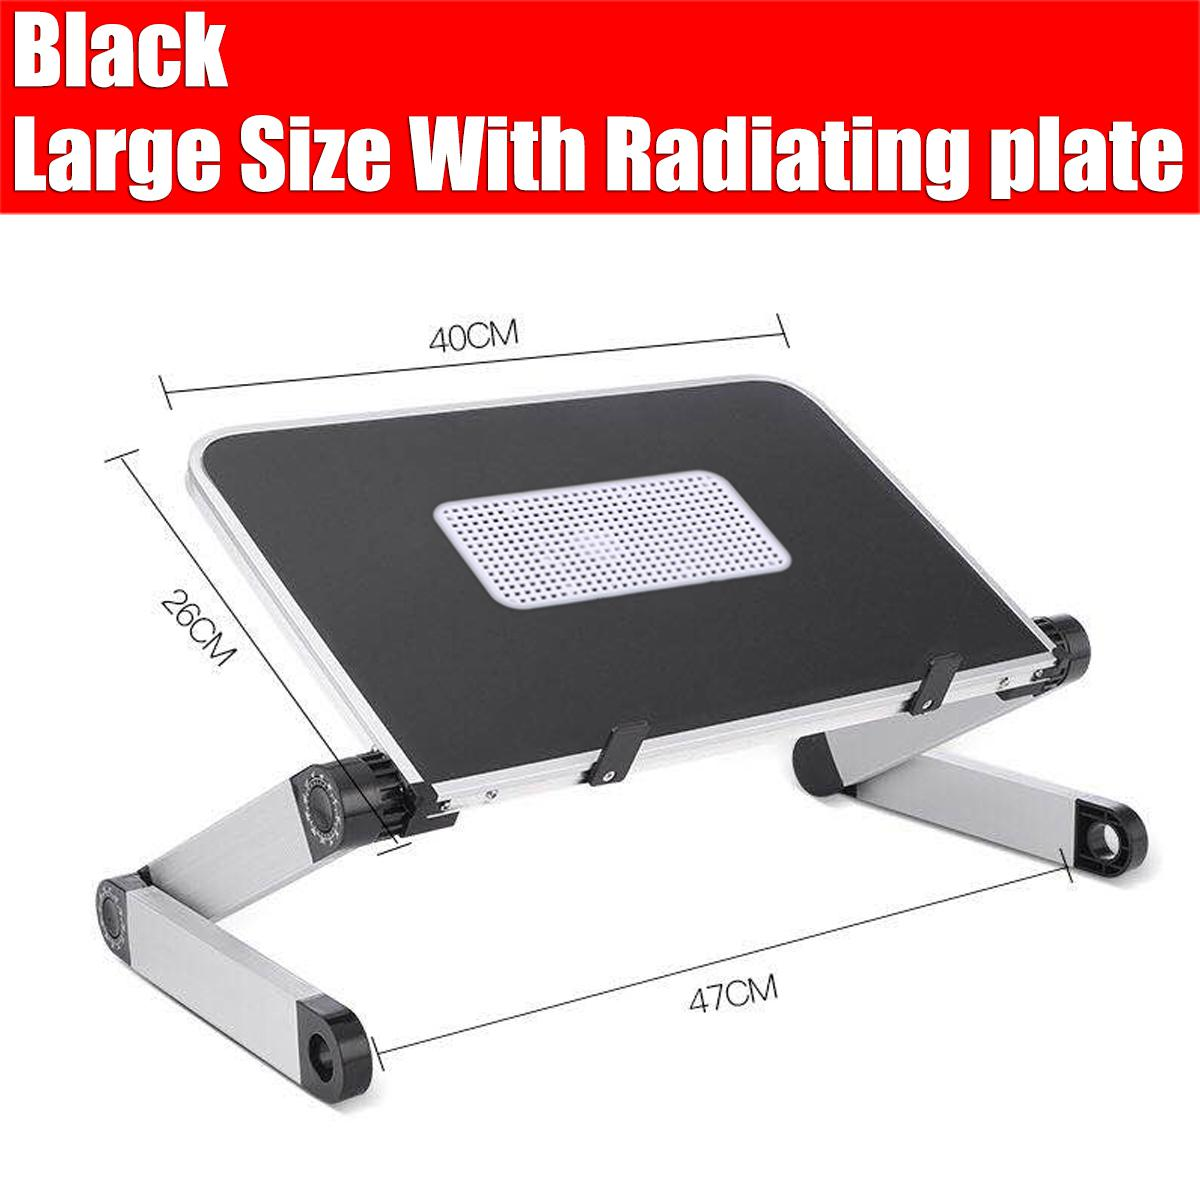 40x26cm Portable 360 Adjustable Aluminum Laptop Stand Desk Table With Adjustable Stand With Radiator Plate Mouse Board Ergonomic Design For Using In Bed Sofa Carpet Gifts Black Kogan Com